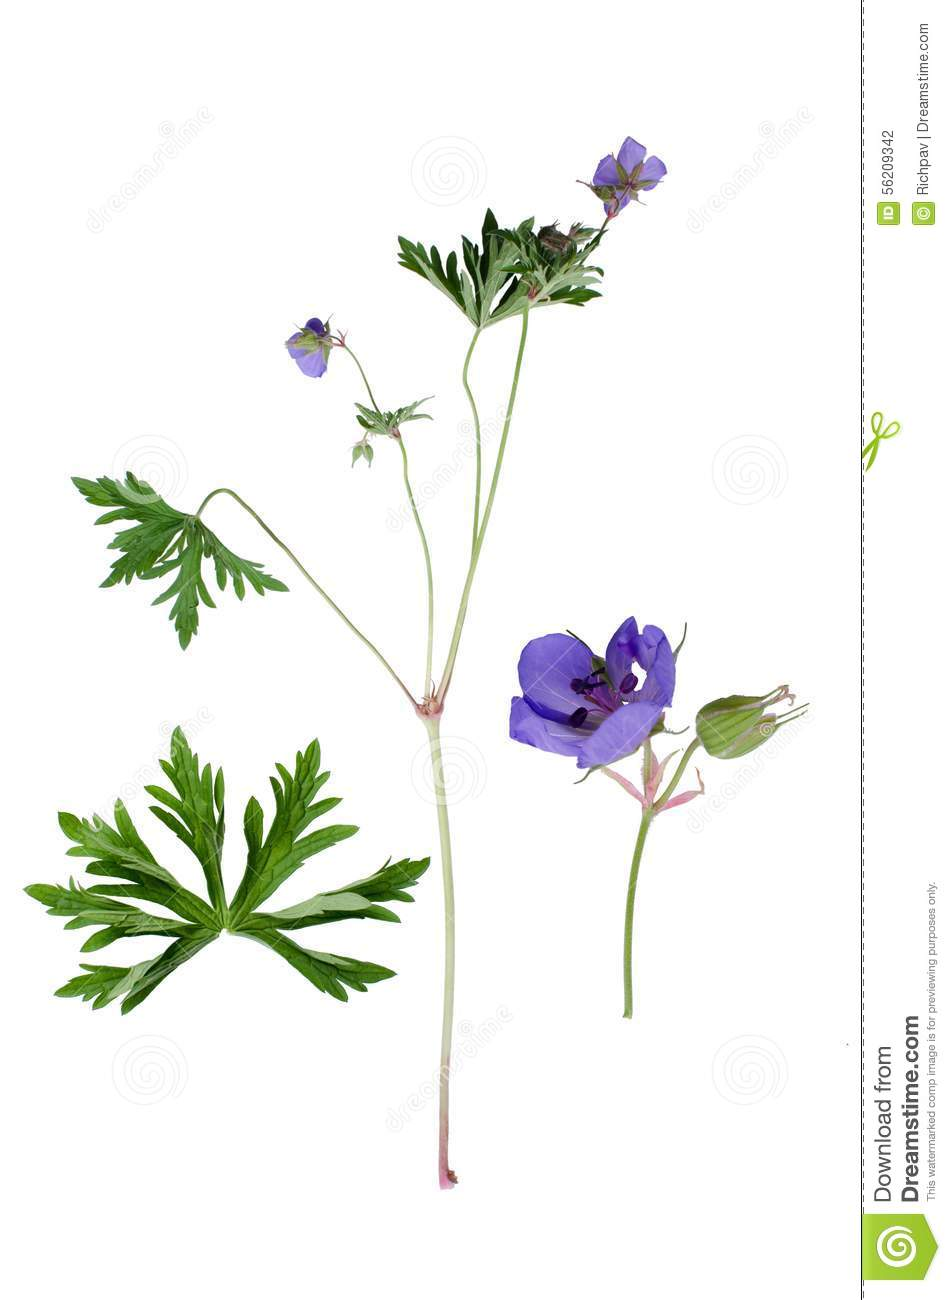 Meadow Cranesbill Stock Photo.